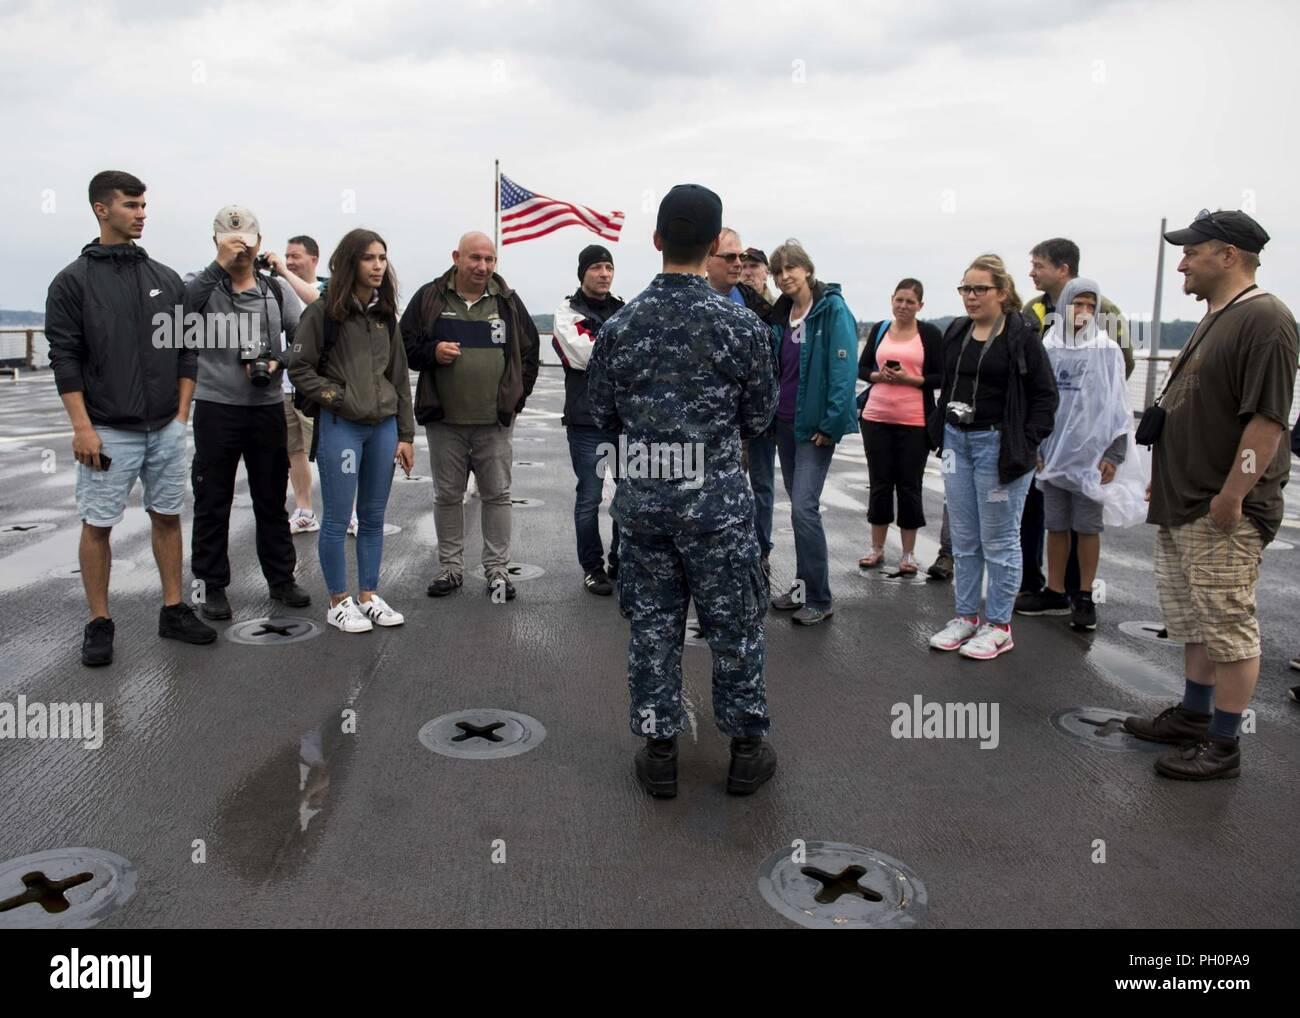 SEA (June 16, 2018) Hospital Corpsman 2nd Class Andy Kim, center, gives a tour of the Harpers Ferry-class dock landing ship USS Oak Hill (LSD 51) in Kiel, Germany, during Kiel Week 2018, June 16. Oak Hill, home-ported in Virginia Beach, Virginia, is conducting naval operations in the U.S. 6th Fleet area of operations. Stock Photo